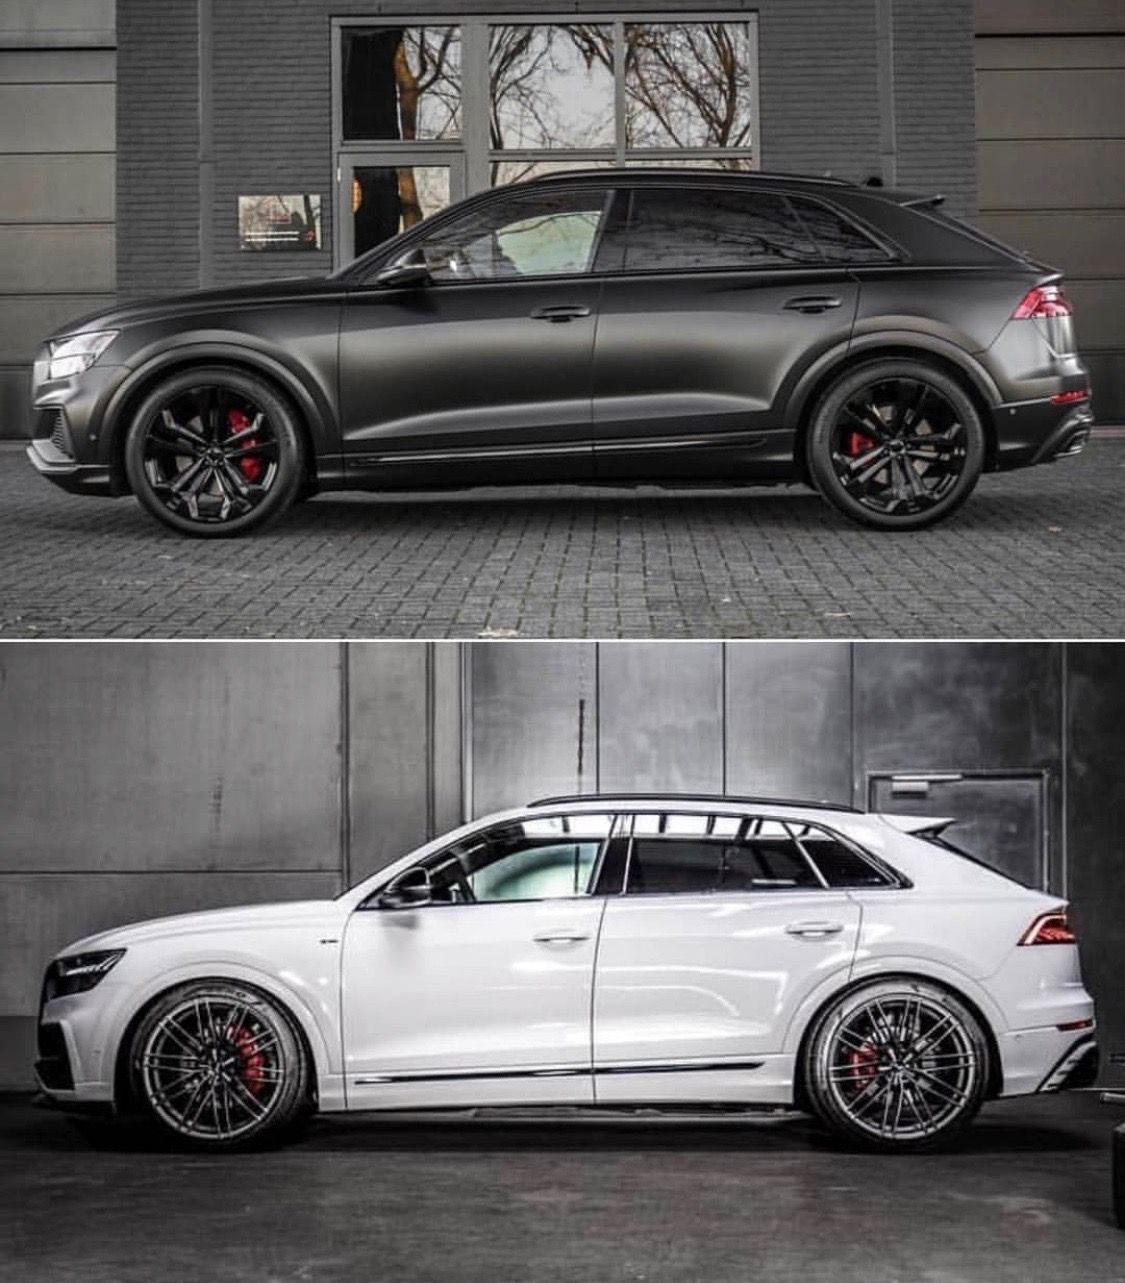 2019 Audi Q8 Custom Everything Black Or White Audi Black Custom Modifiedcarprojects Wh Audi Q Audi Q7 Black Audi Rs